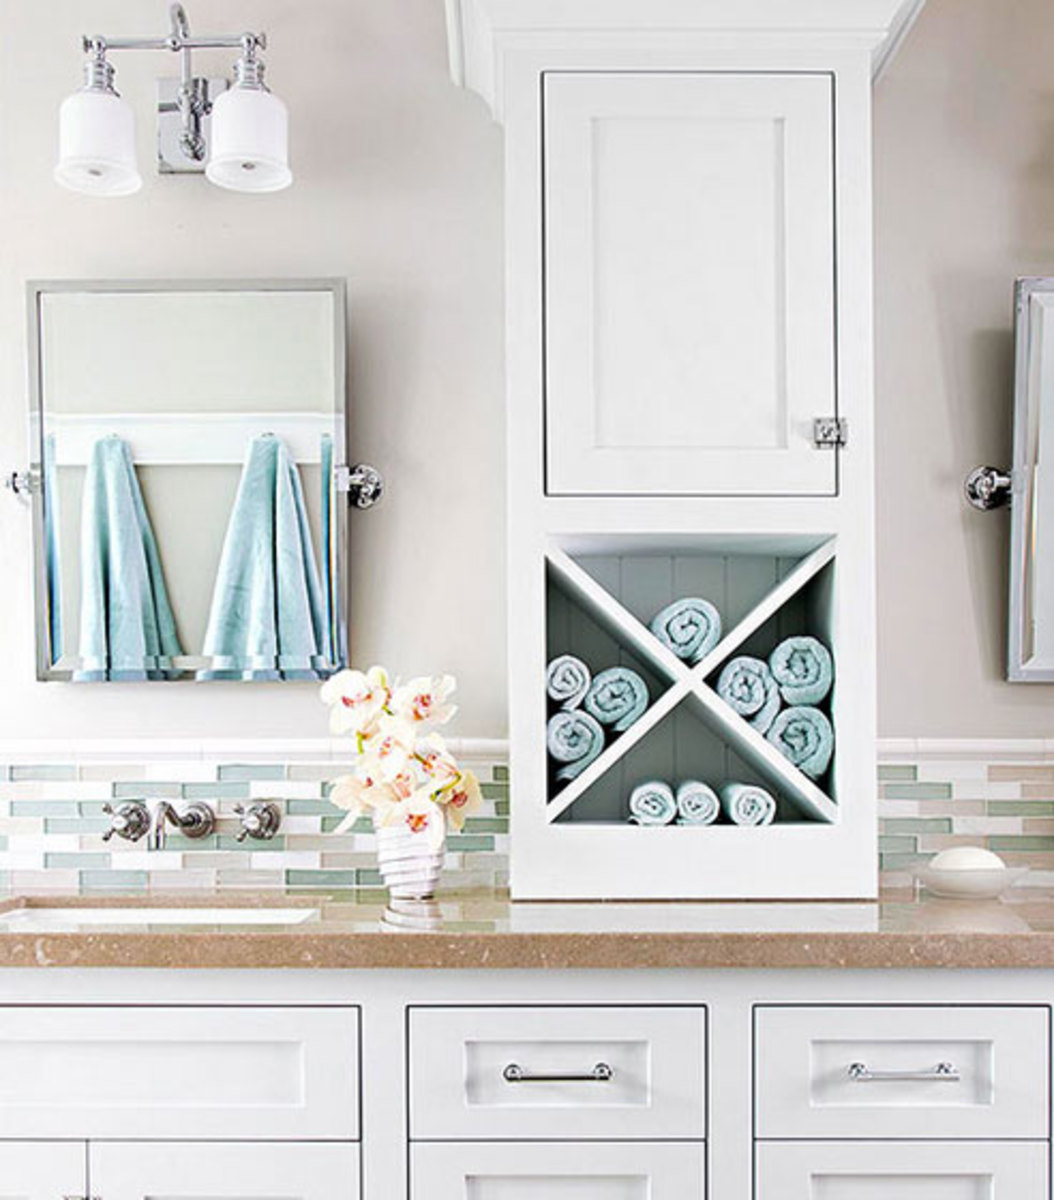 Countertop Solutions | Click Pic for 42 DIY Bathroom Organization Ideas